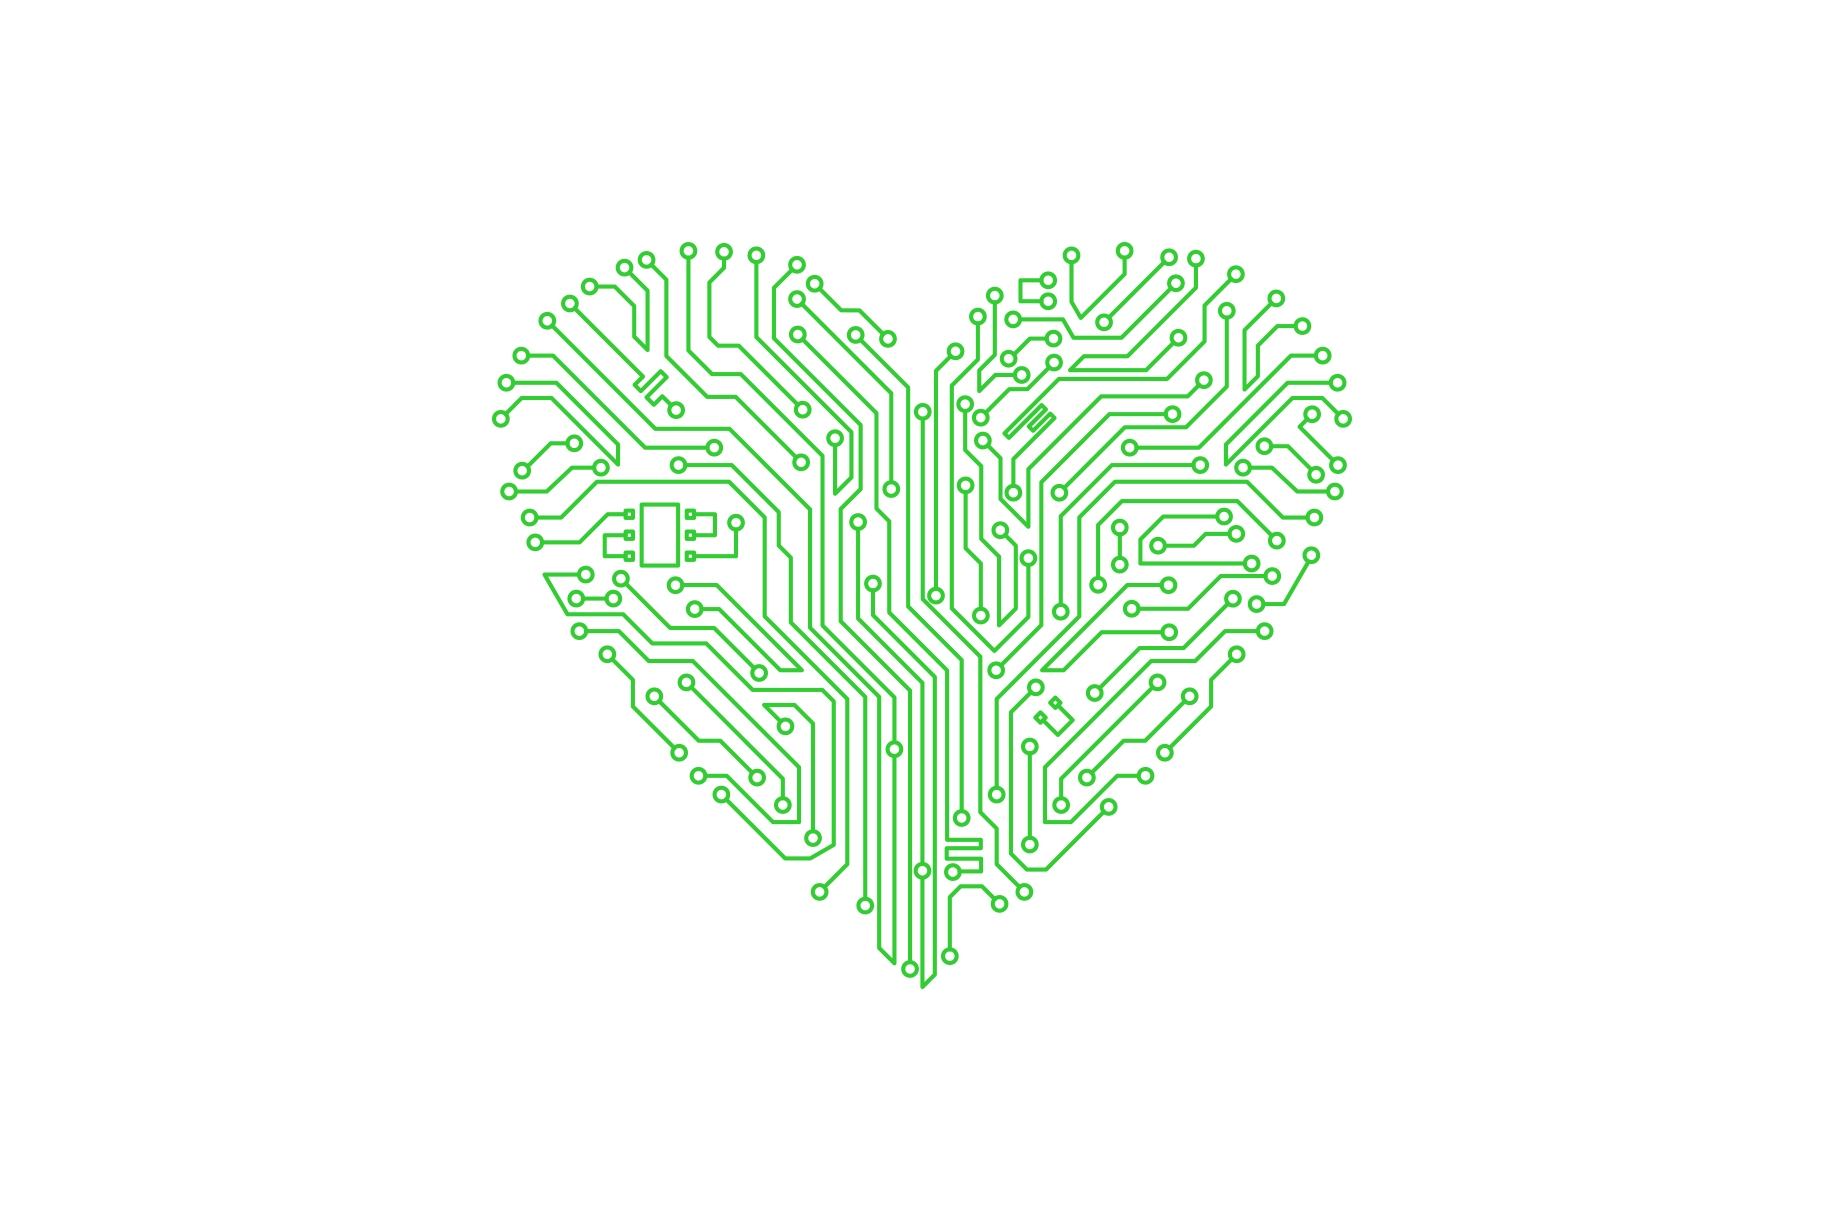 Trustly Careers - Green heart illustration